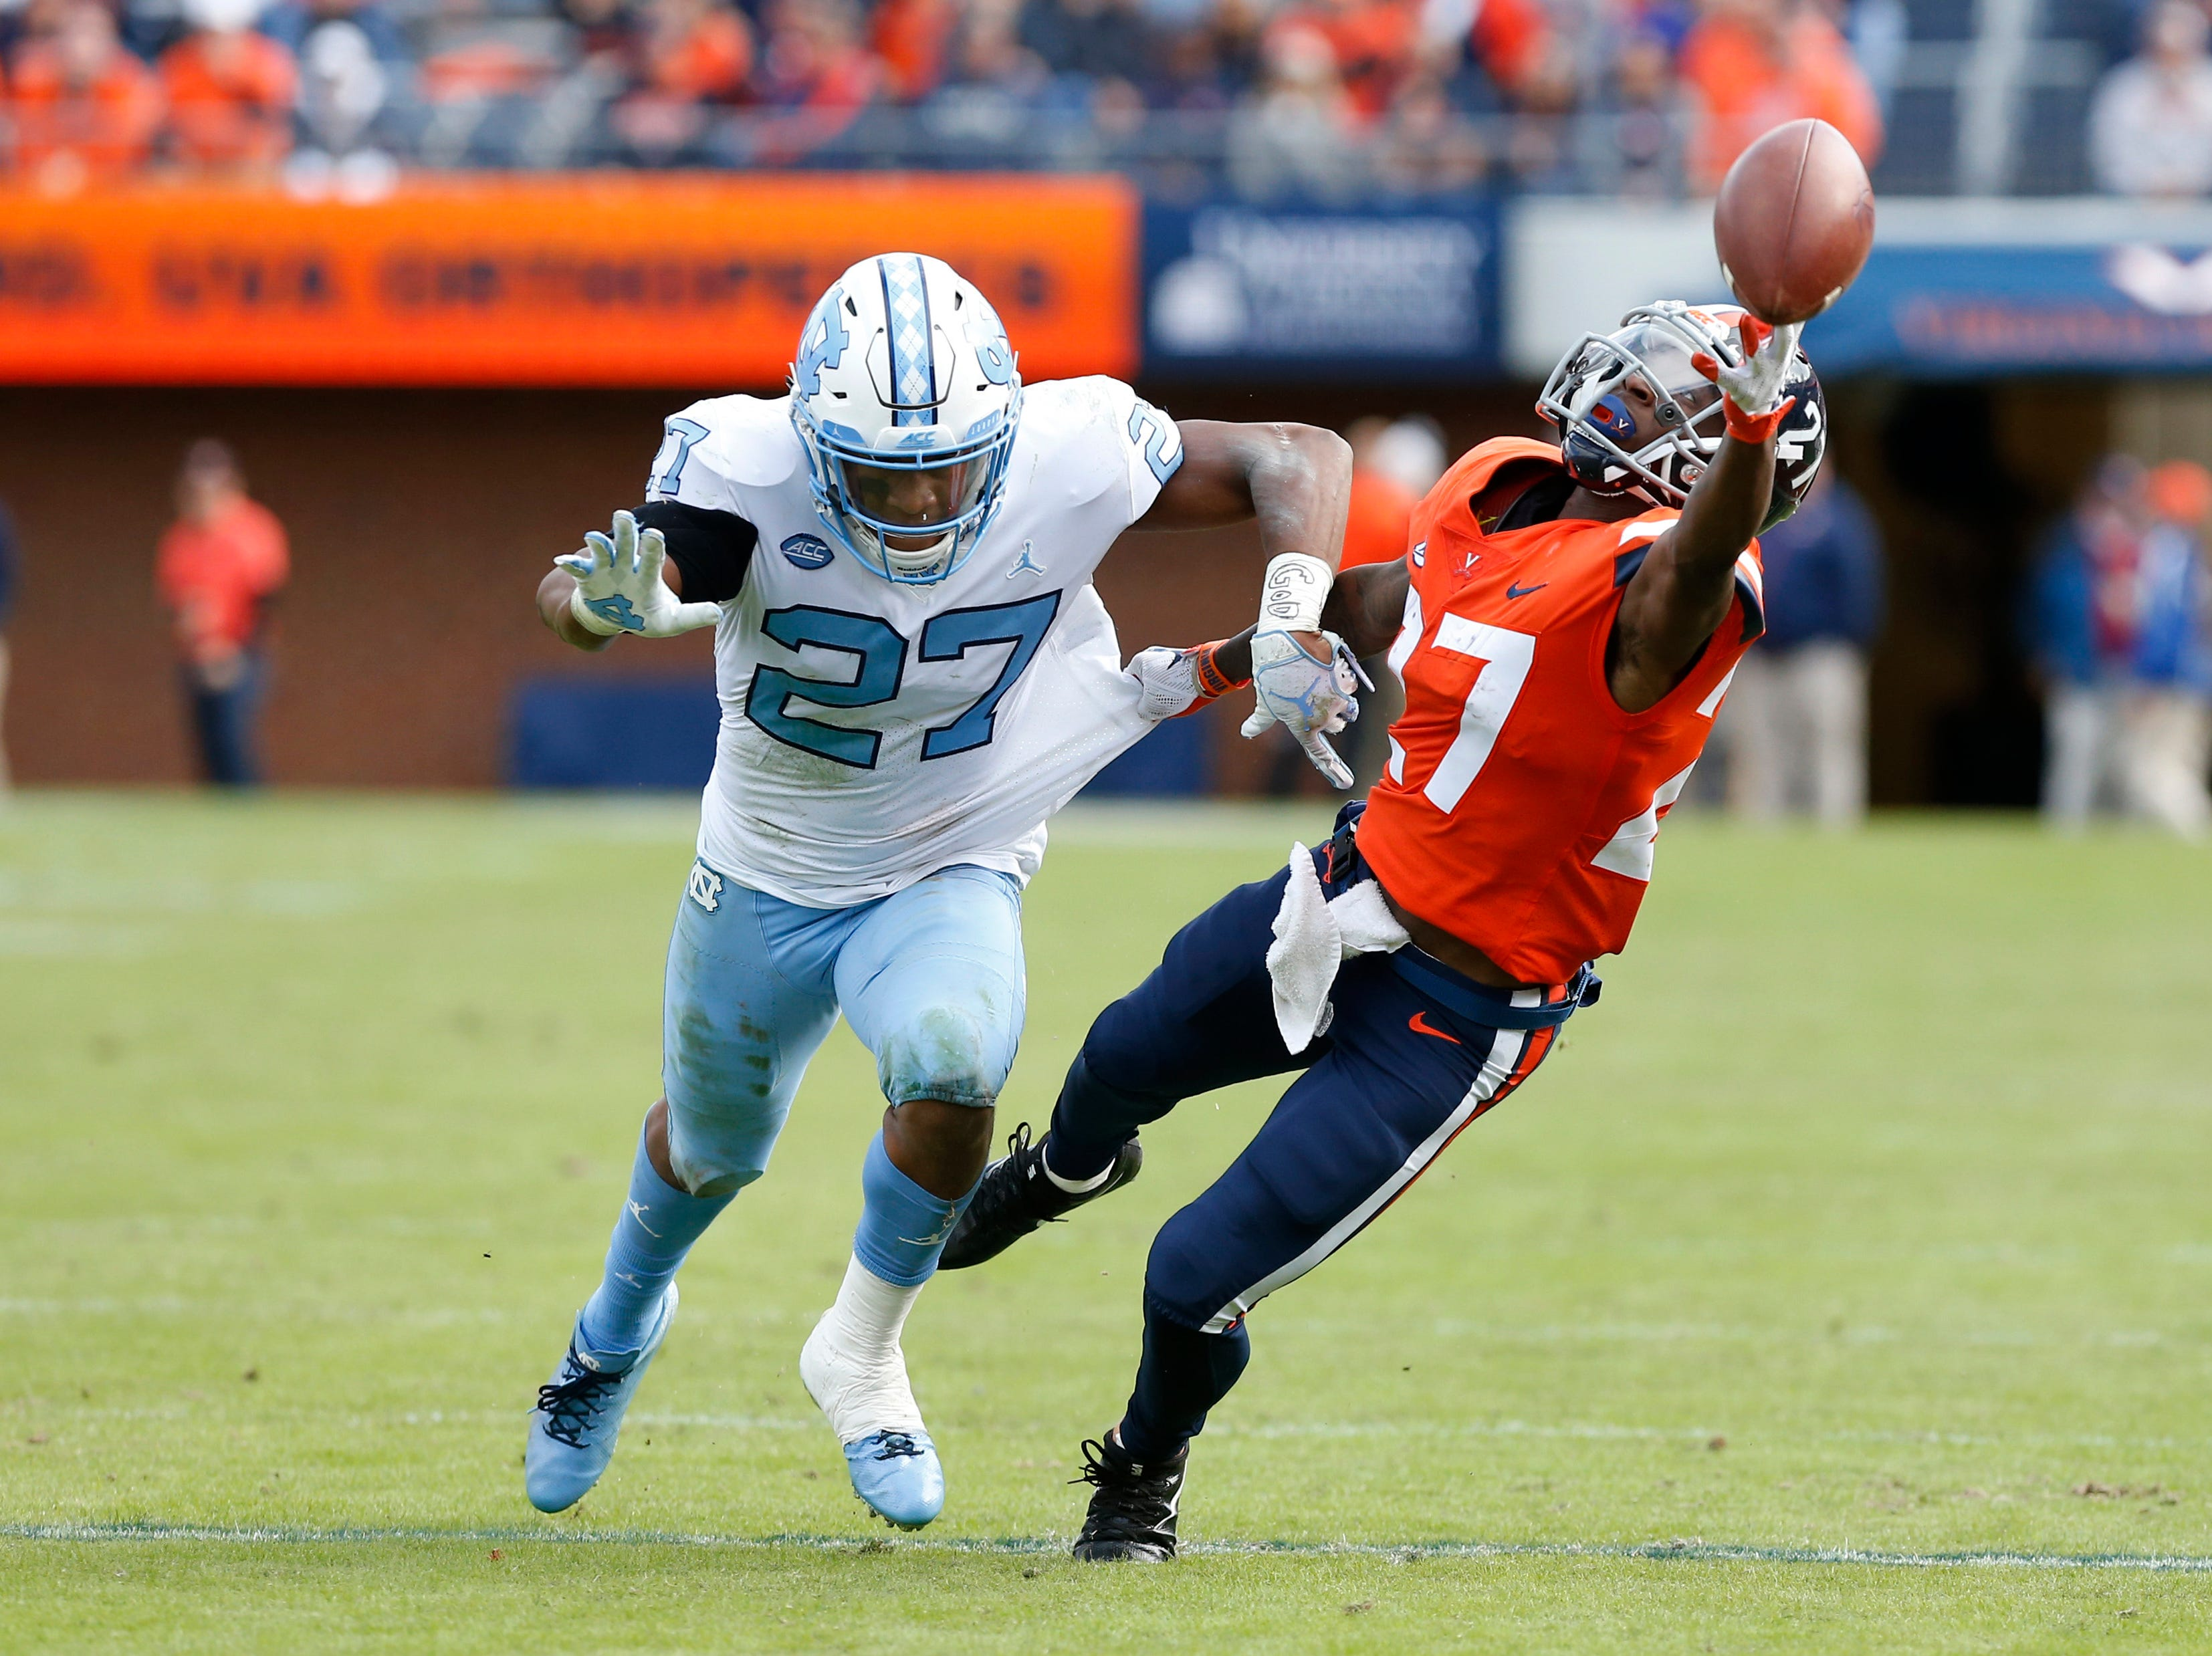 Virginia Cavaliers wide receiver Tavares Kelly (27) reaches for a pass intended for North Carolina Tar Heels running back Chavis Little (27) during the second half at Scott Stadium.